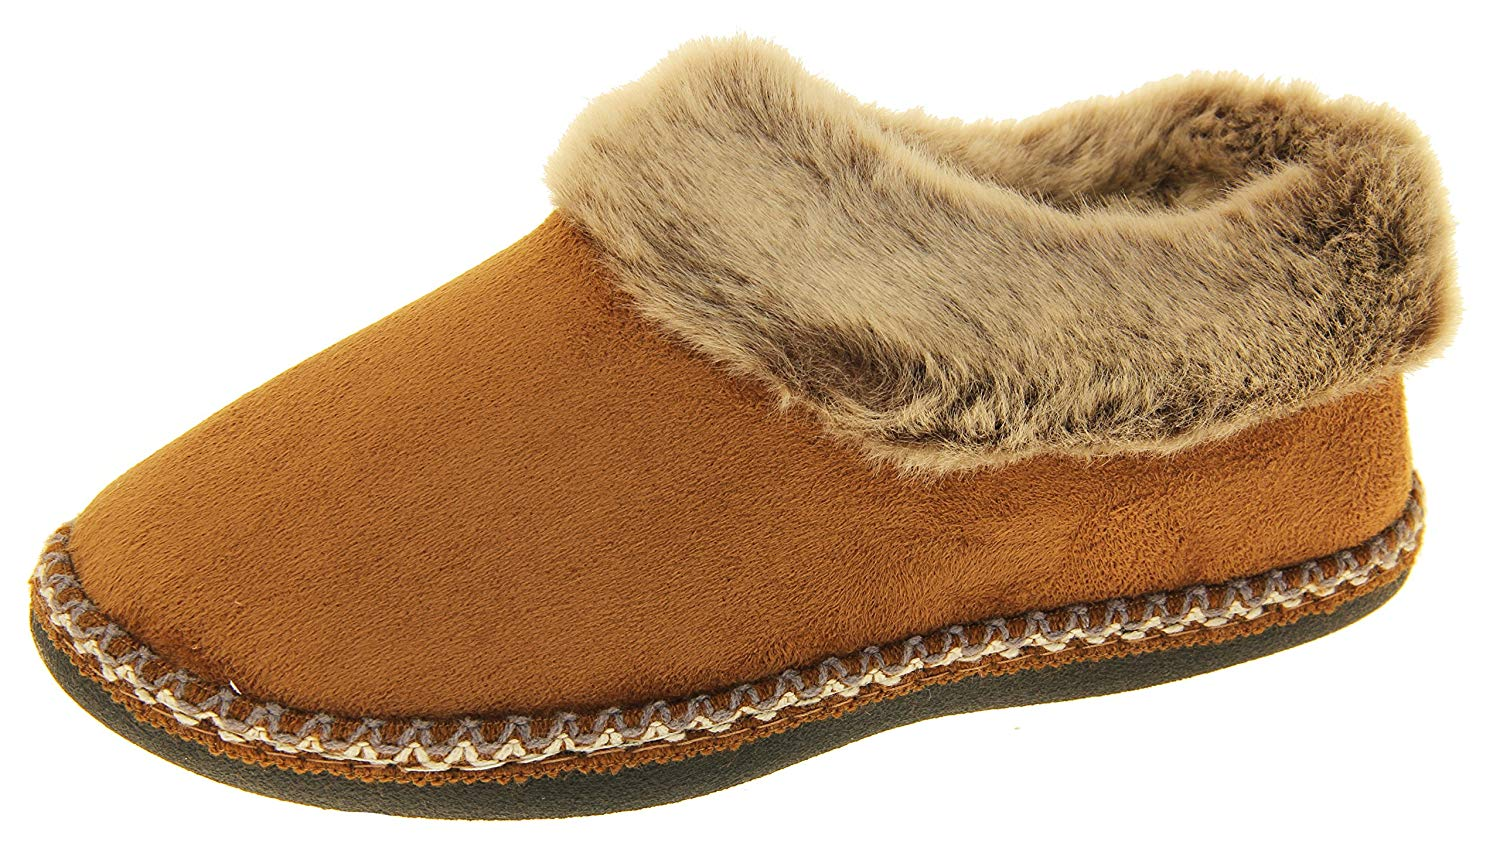 417e4fbf6 Get Quotations · Coolers Womens Tan Brown Synthetic Fur Lined Slippers 9  B(M) US